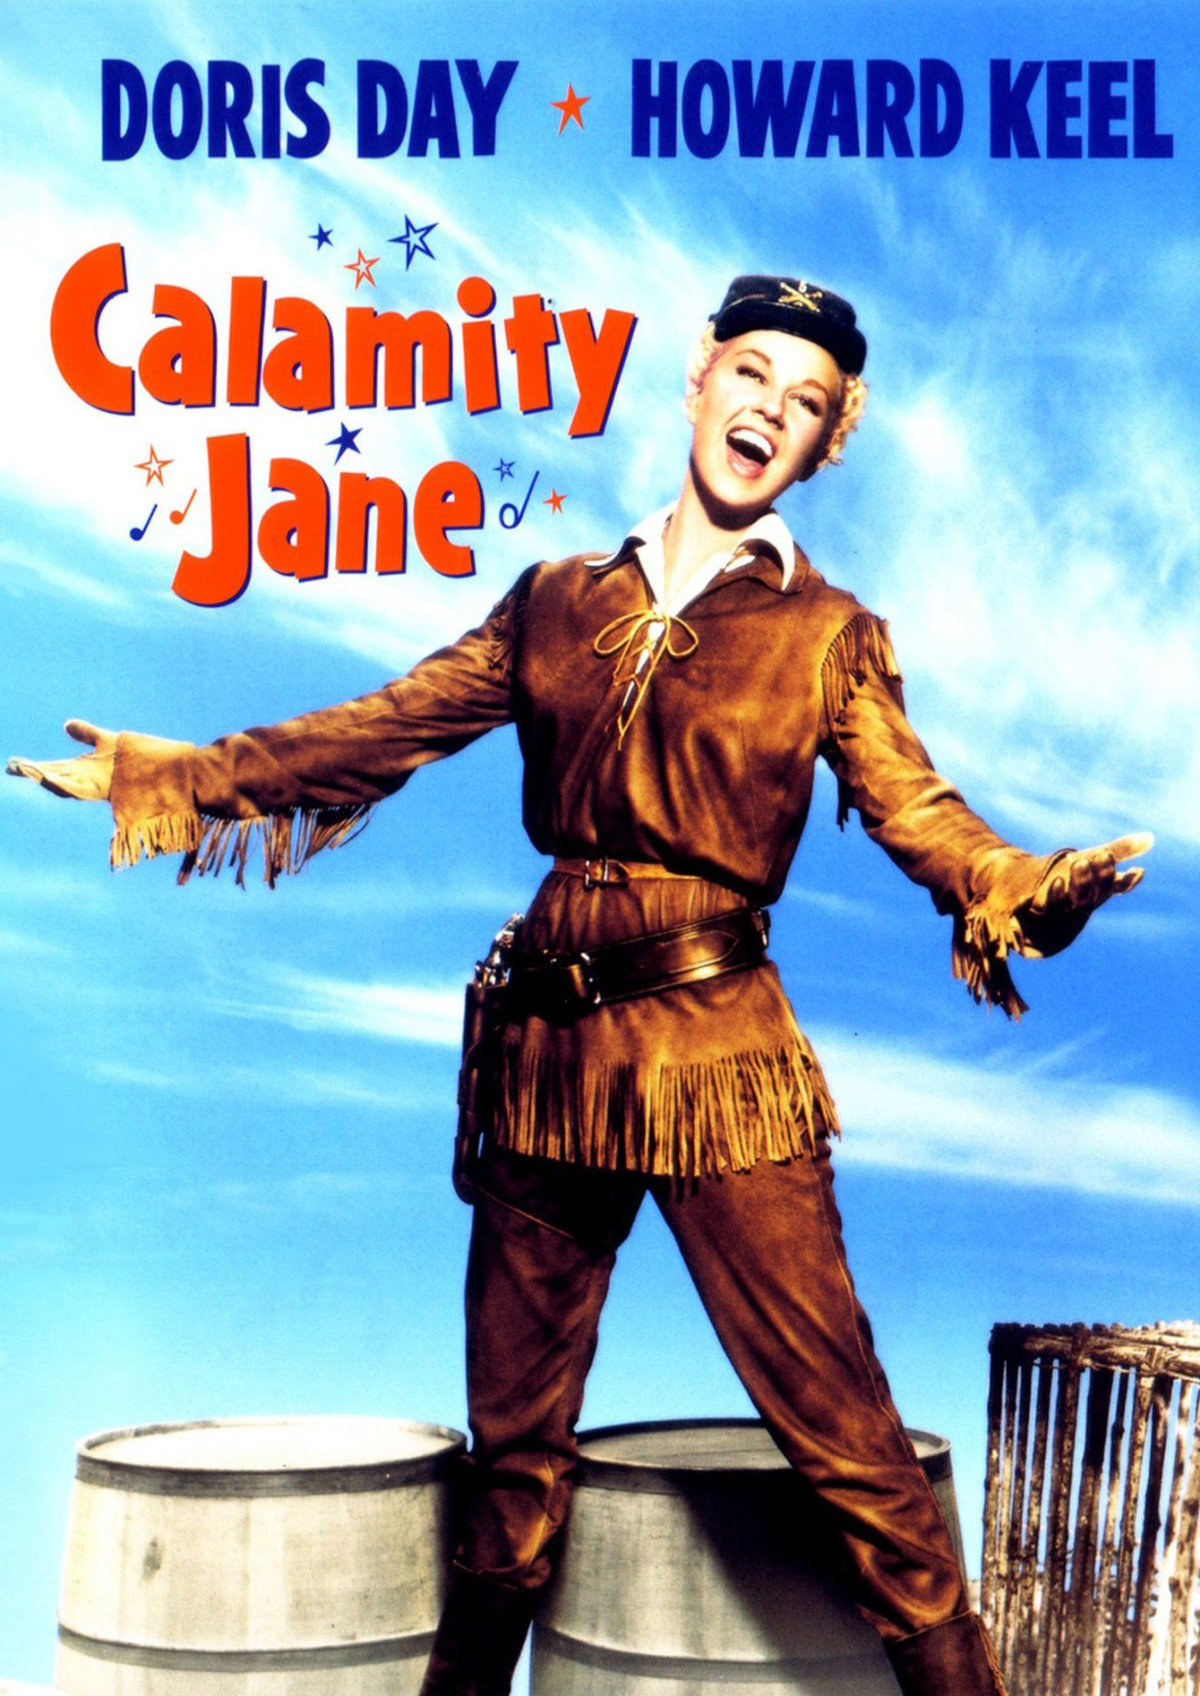 'Calamity Jane' movie poster